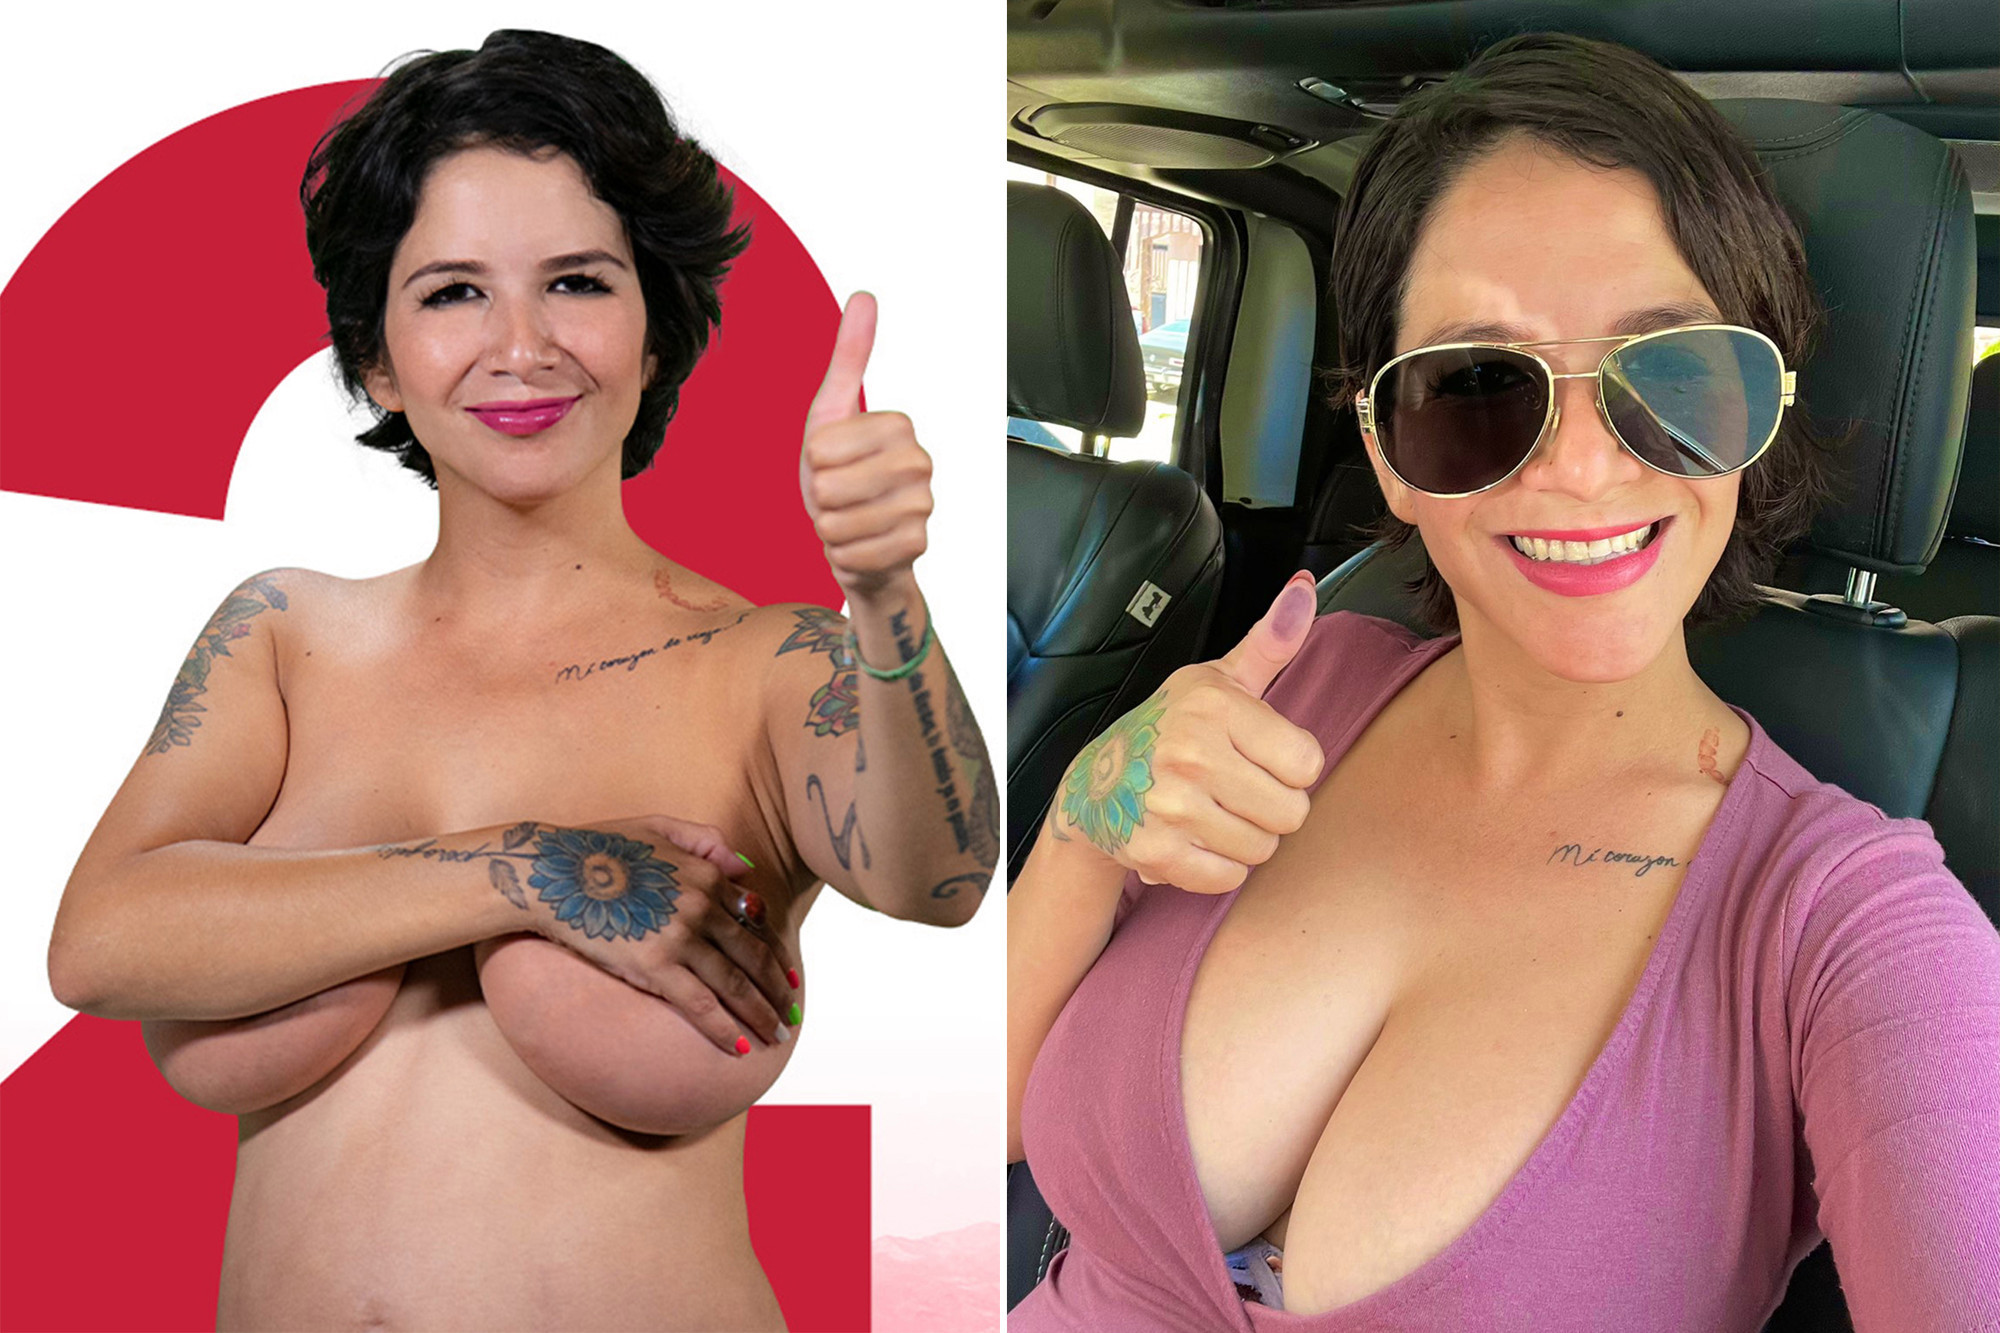 ?Mexican model-turned-politician offers free boob jobs for women voters if she wins her election